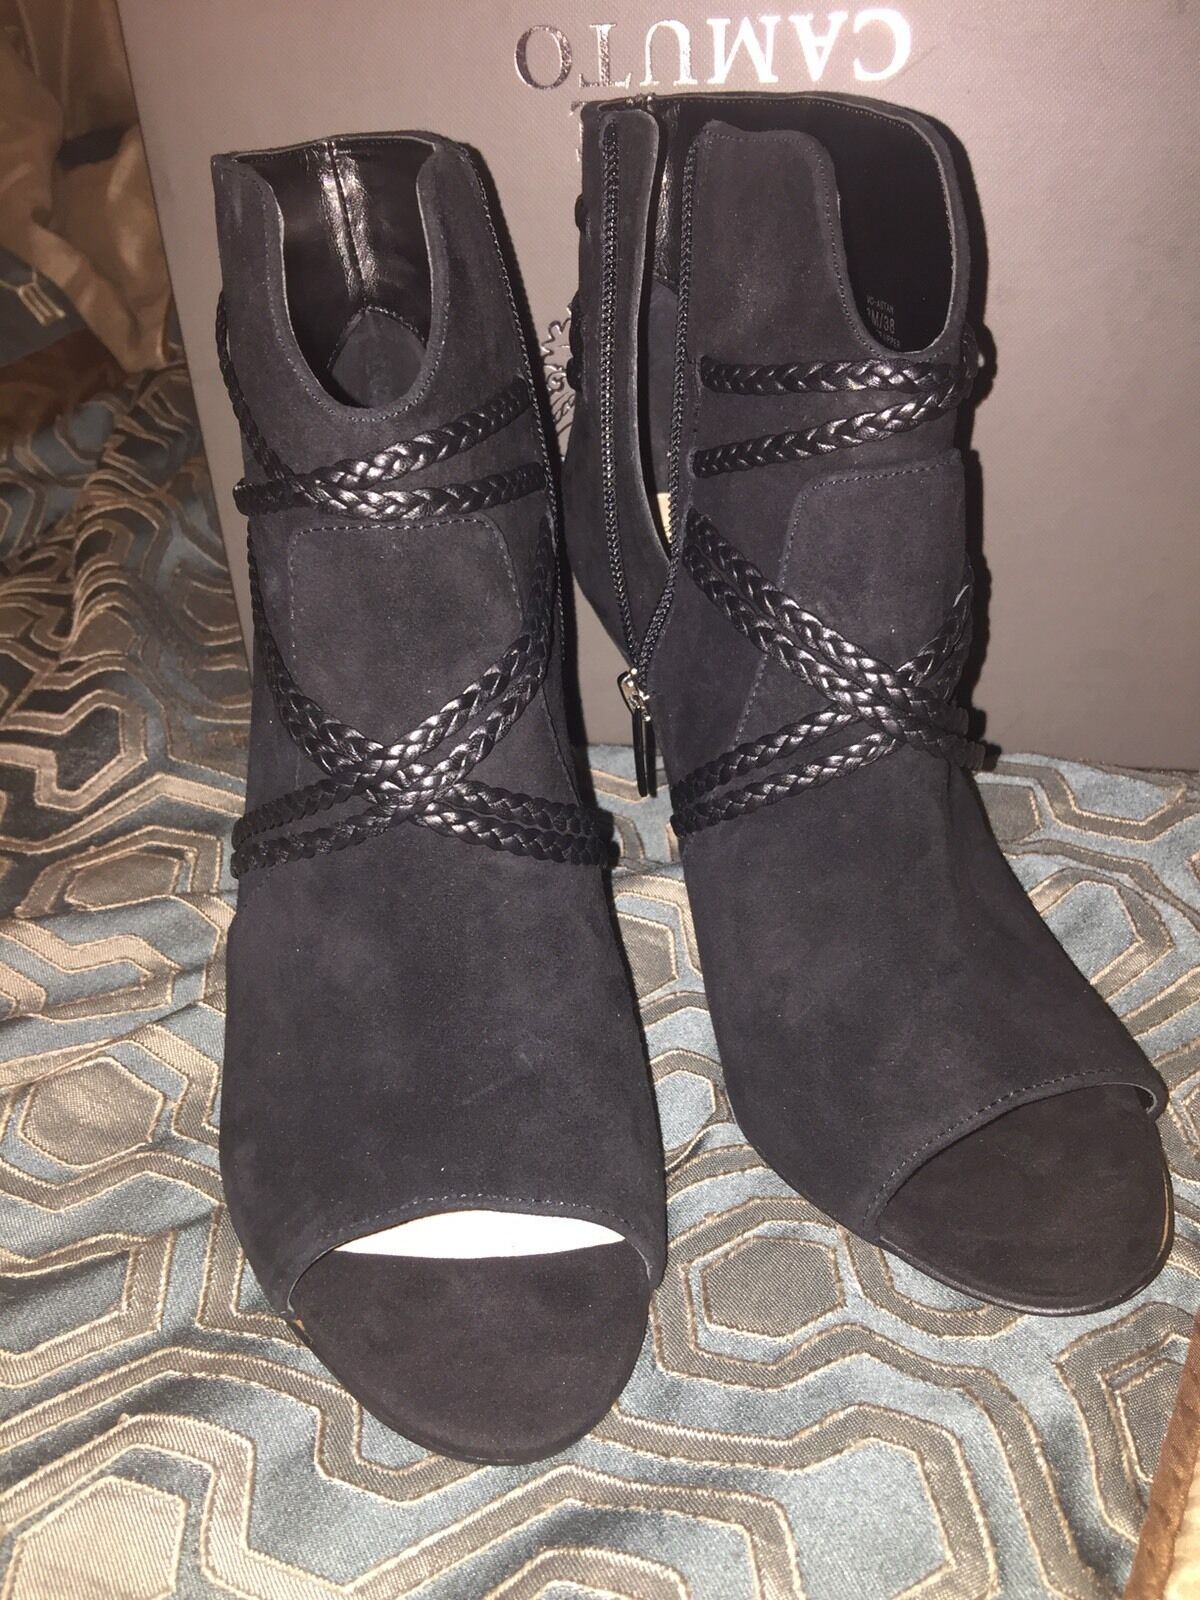 Vince Camuto Astan Open Toe Bootie Black Suede Size 8